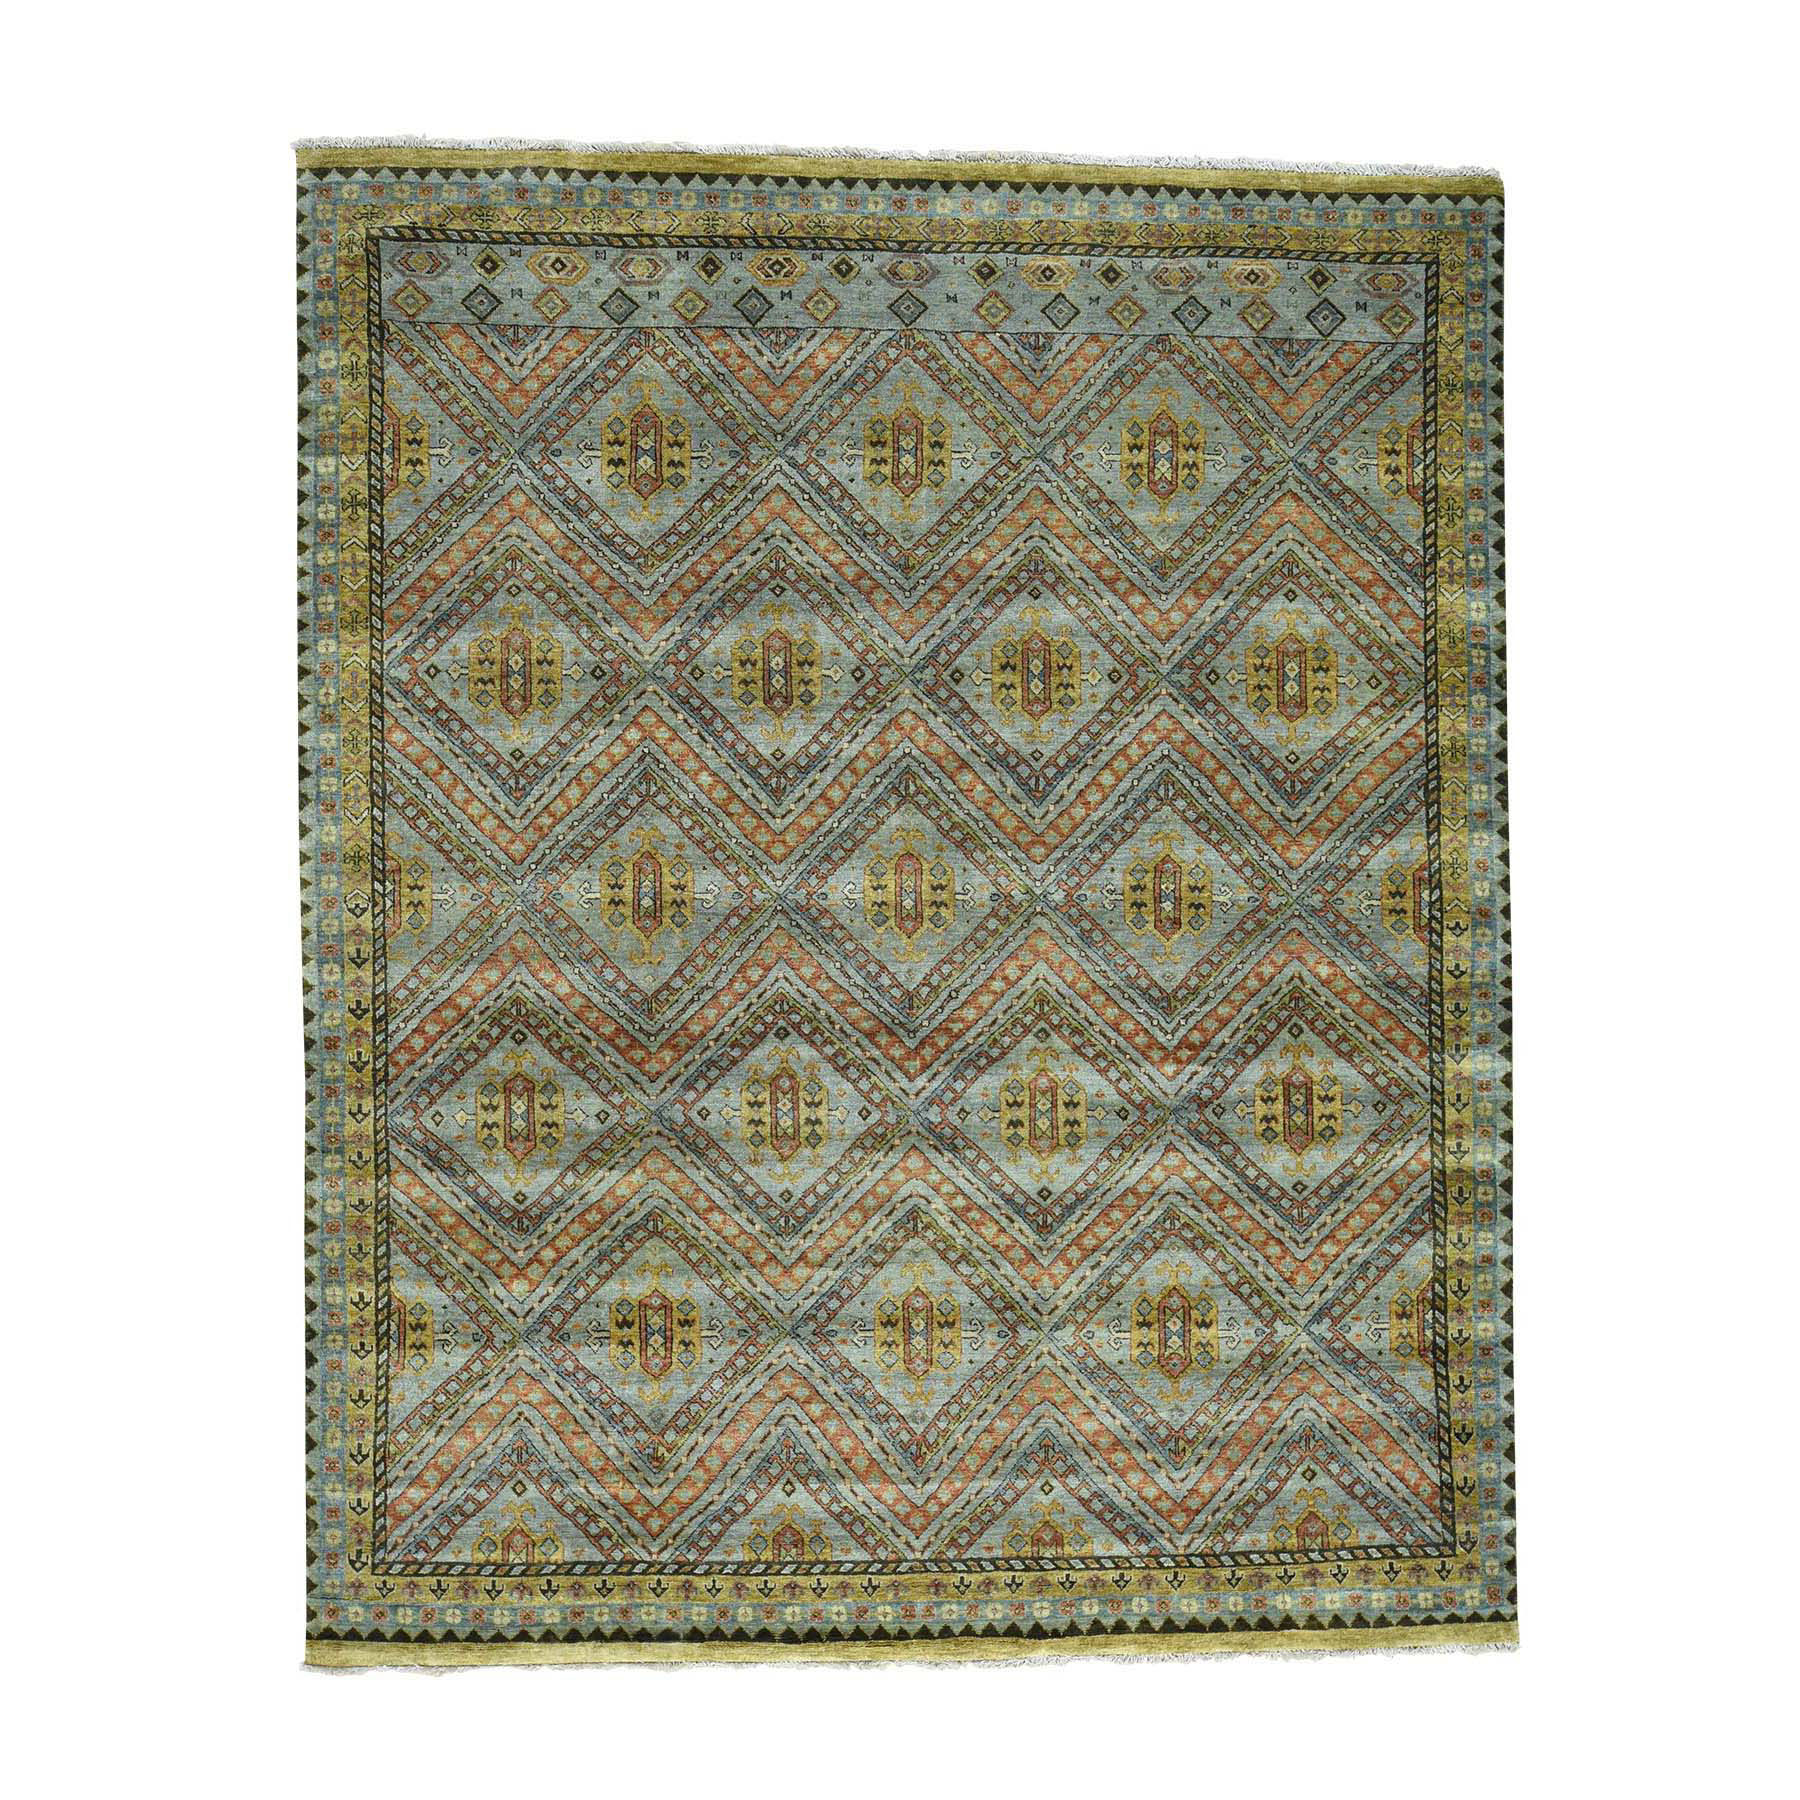 Nomadic And Village Collection Hand Knotted Grey Rug No: 0170708